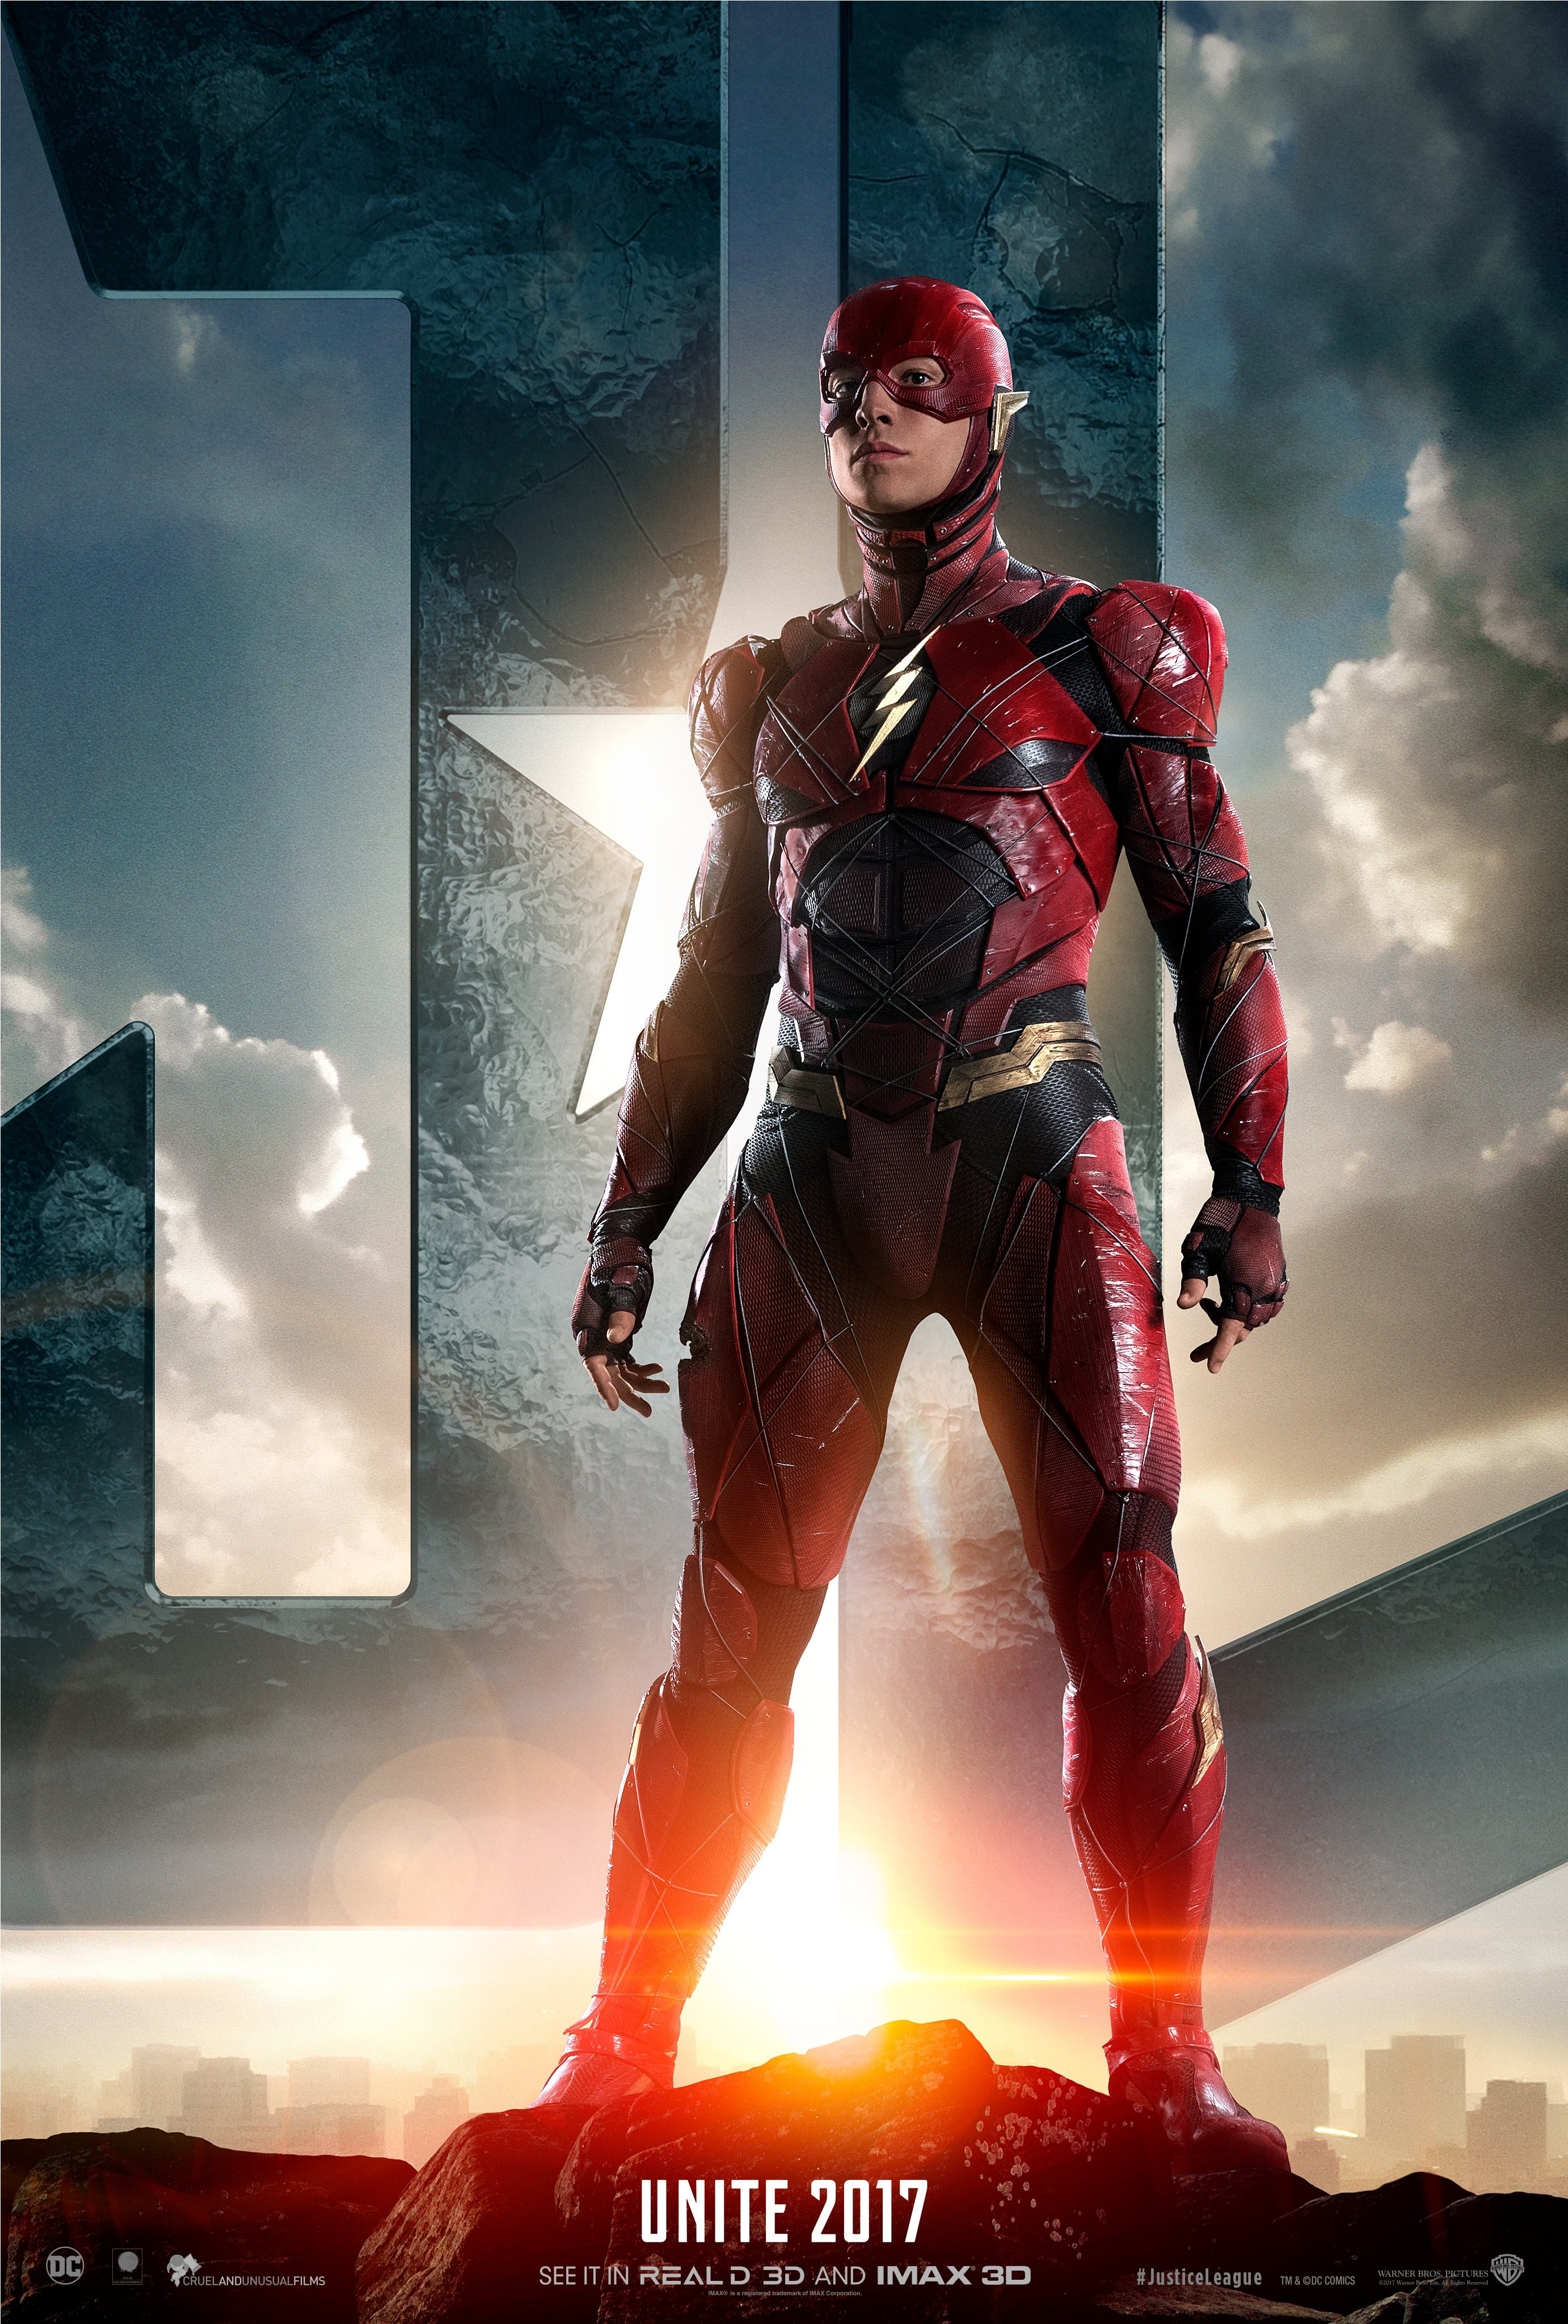 3 Flash Justice League 3 Ezra Miller Flash Speculations Inverse